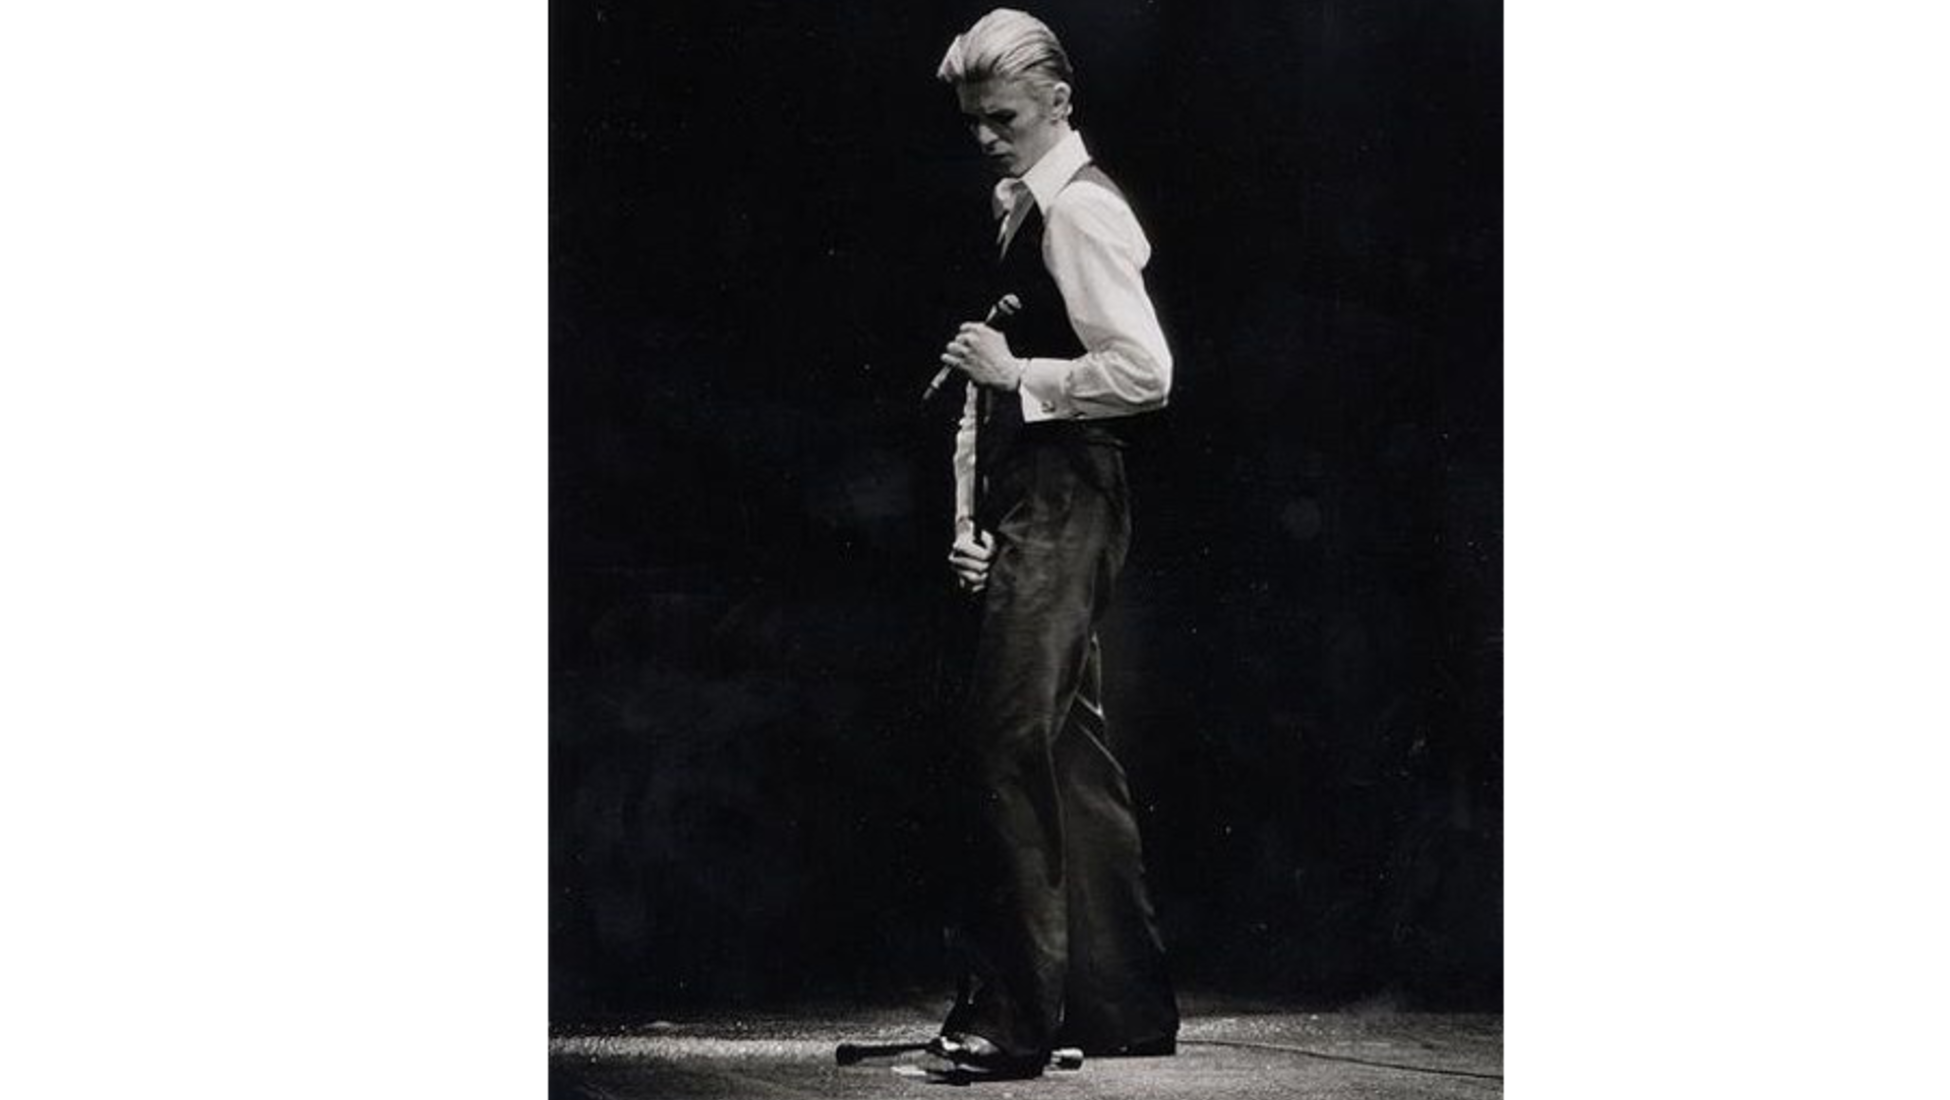 The Story Behind Some of David Bowie's Most Famous Personas